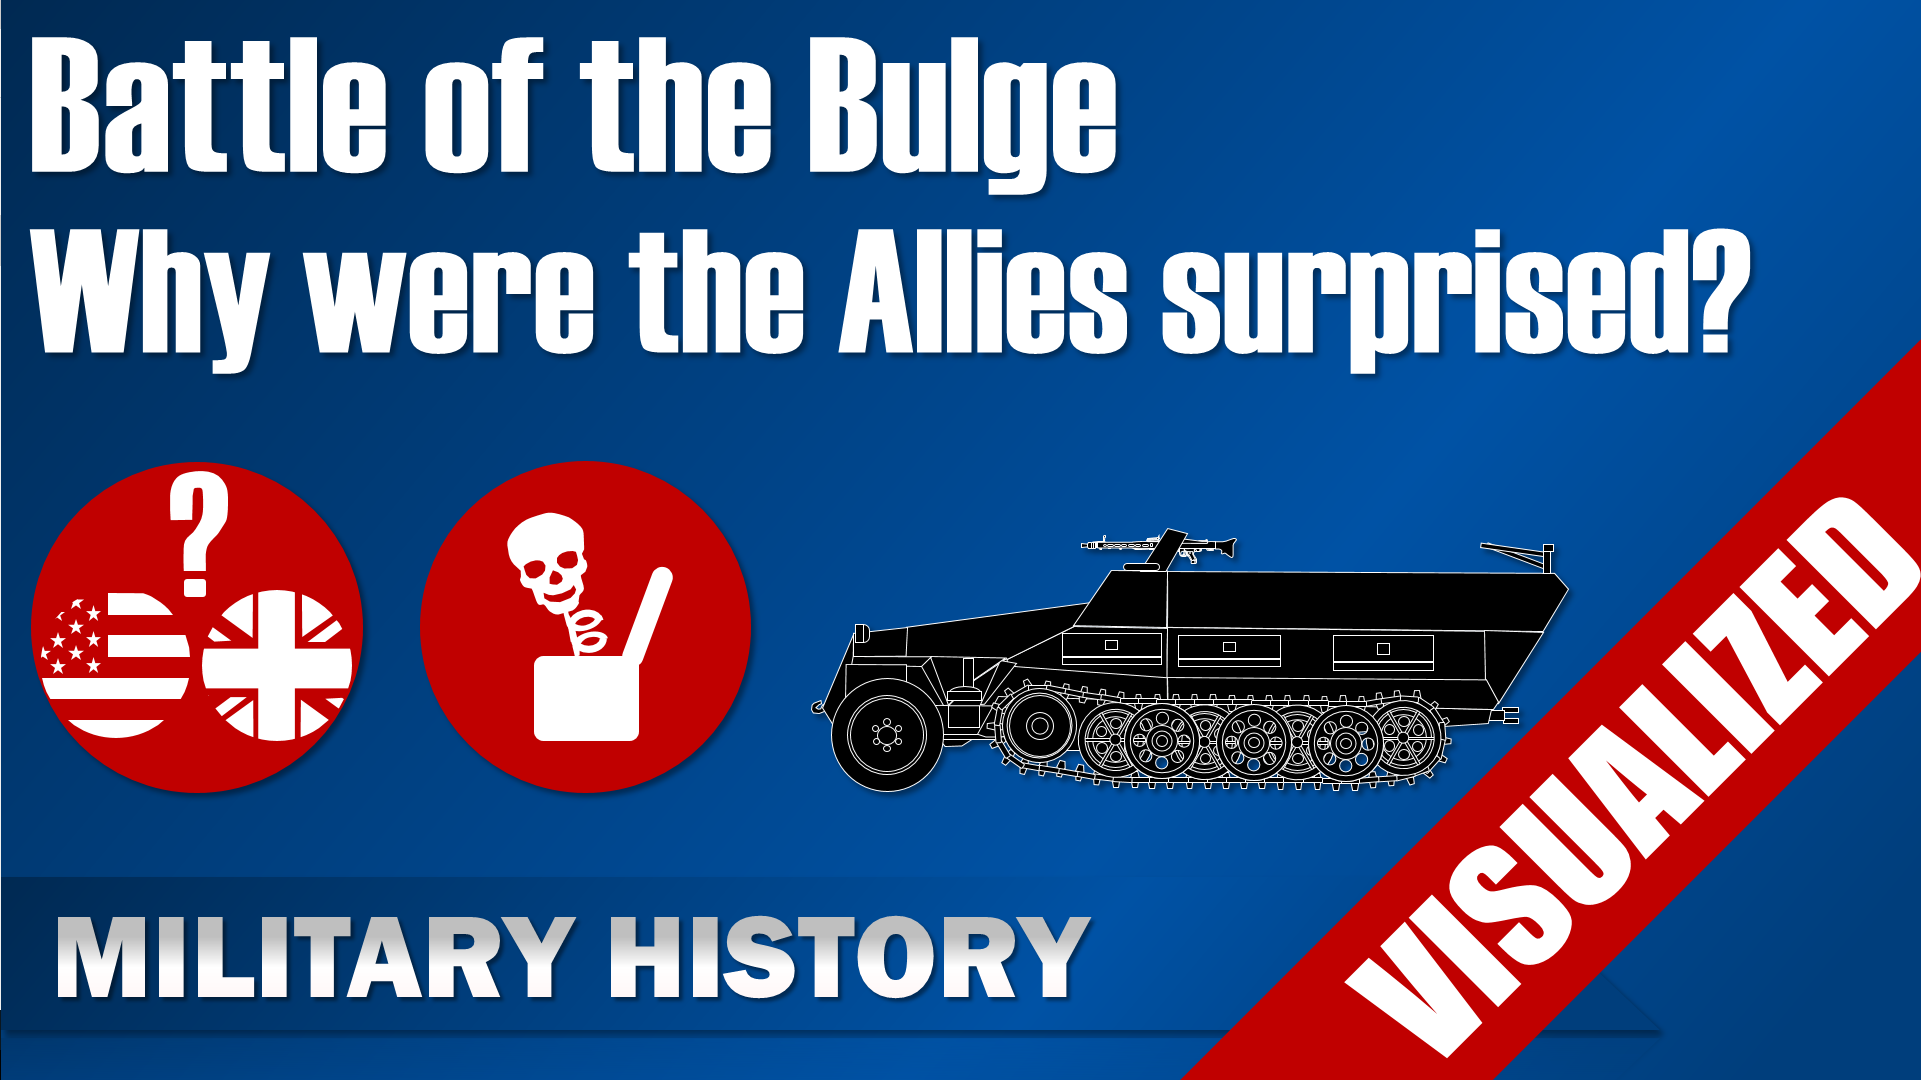 [Battle of the Bulge] Why were the Allies surprised?